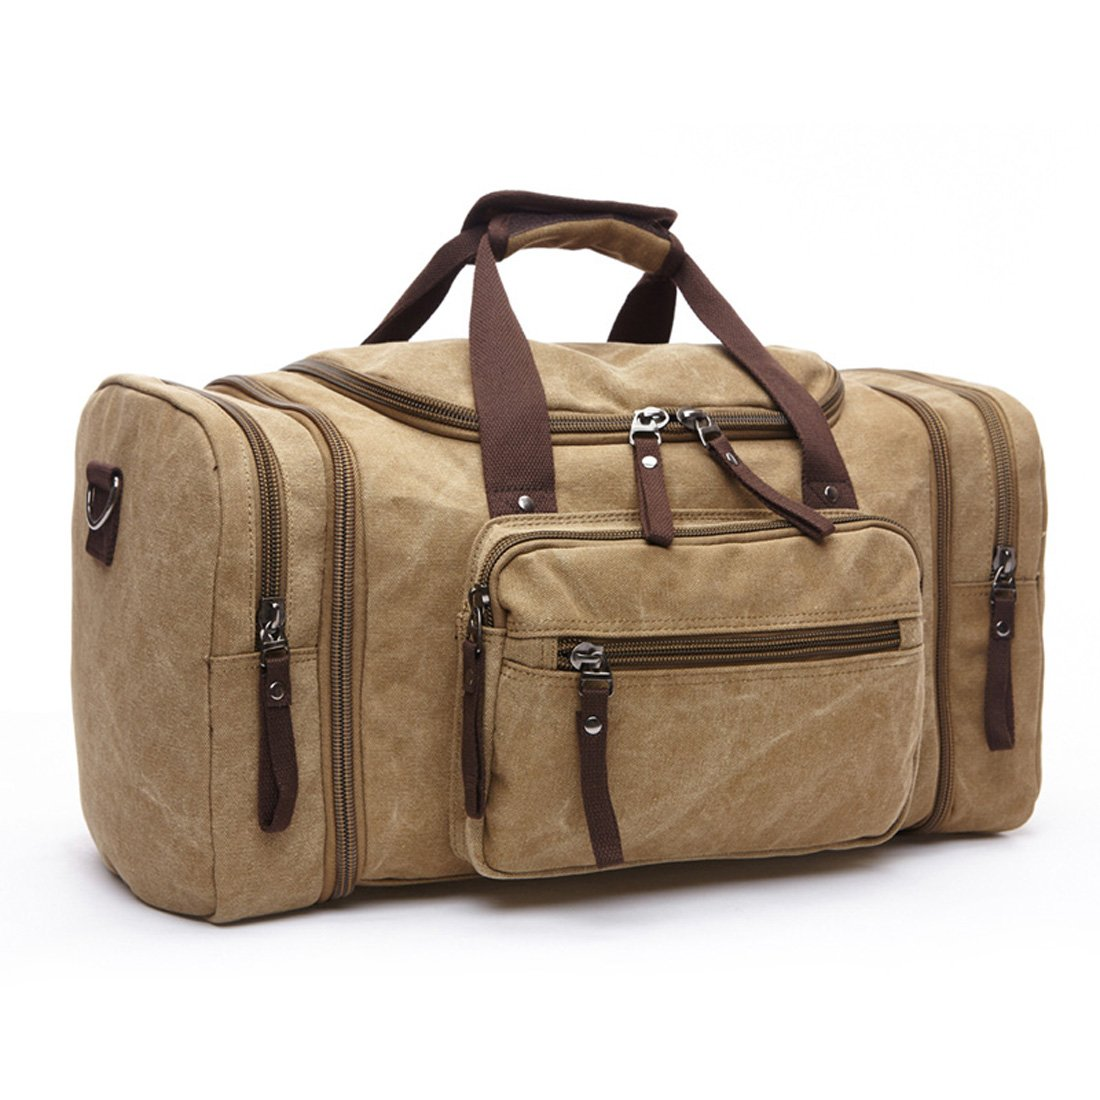 MAGE MALE Travel Overnight Bag Canvas Duffle Weekender Bag with Strap